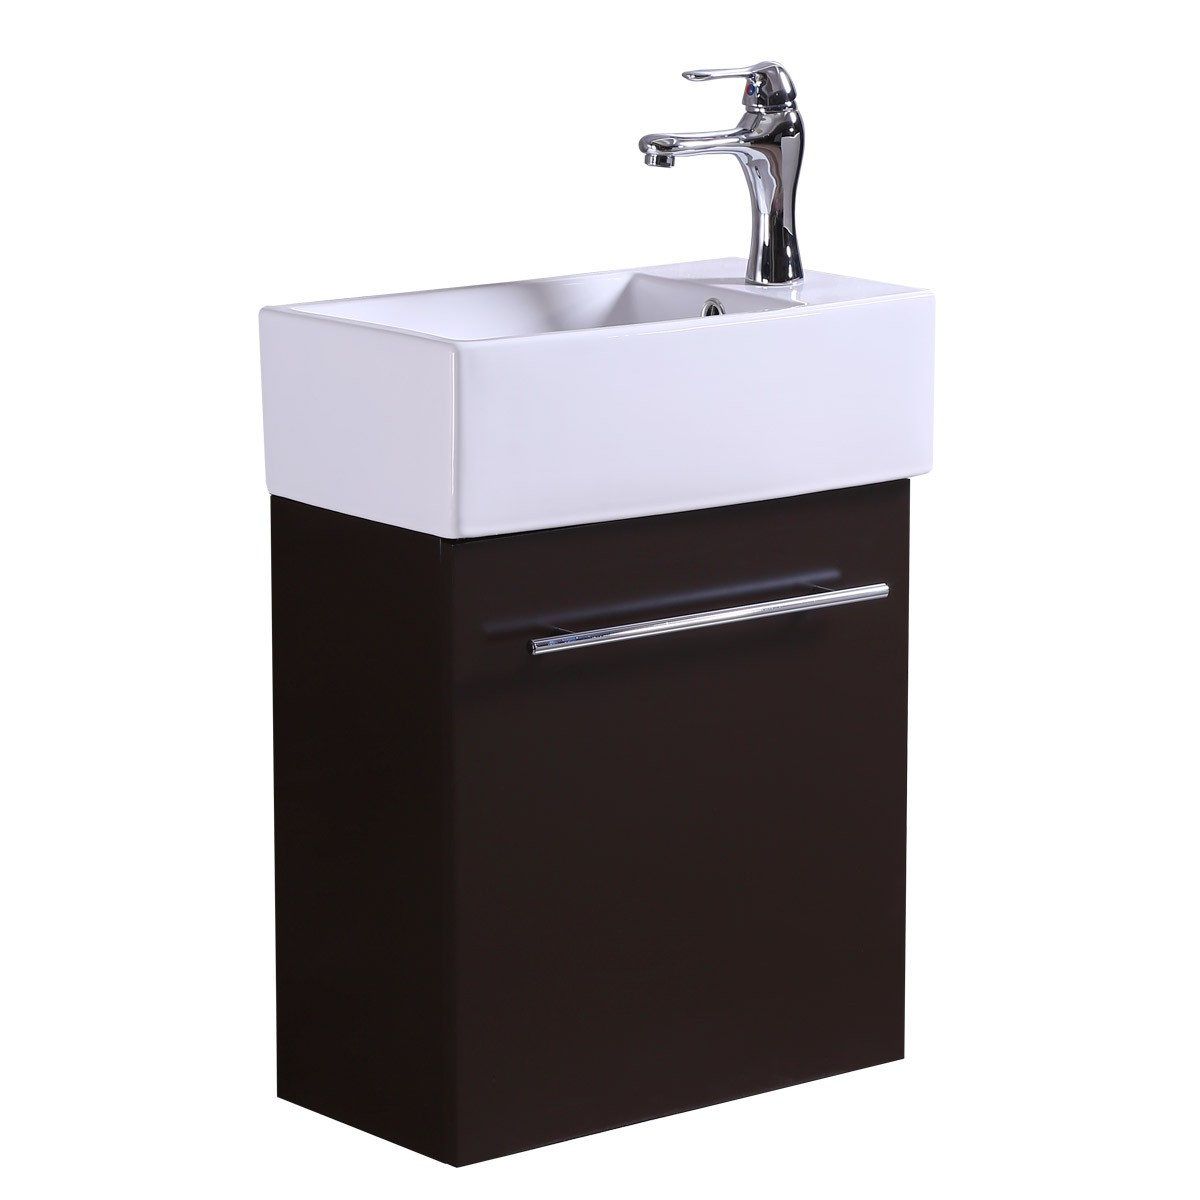 Small White Wall Mount Bathroom Cabinet Vanity Sink with ...